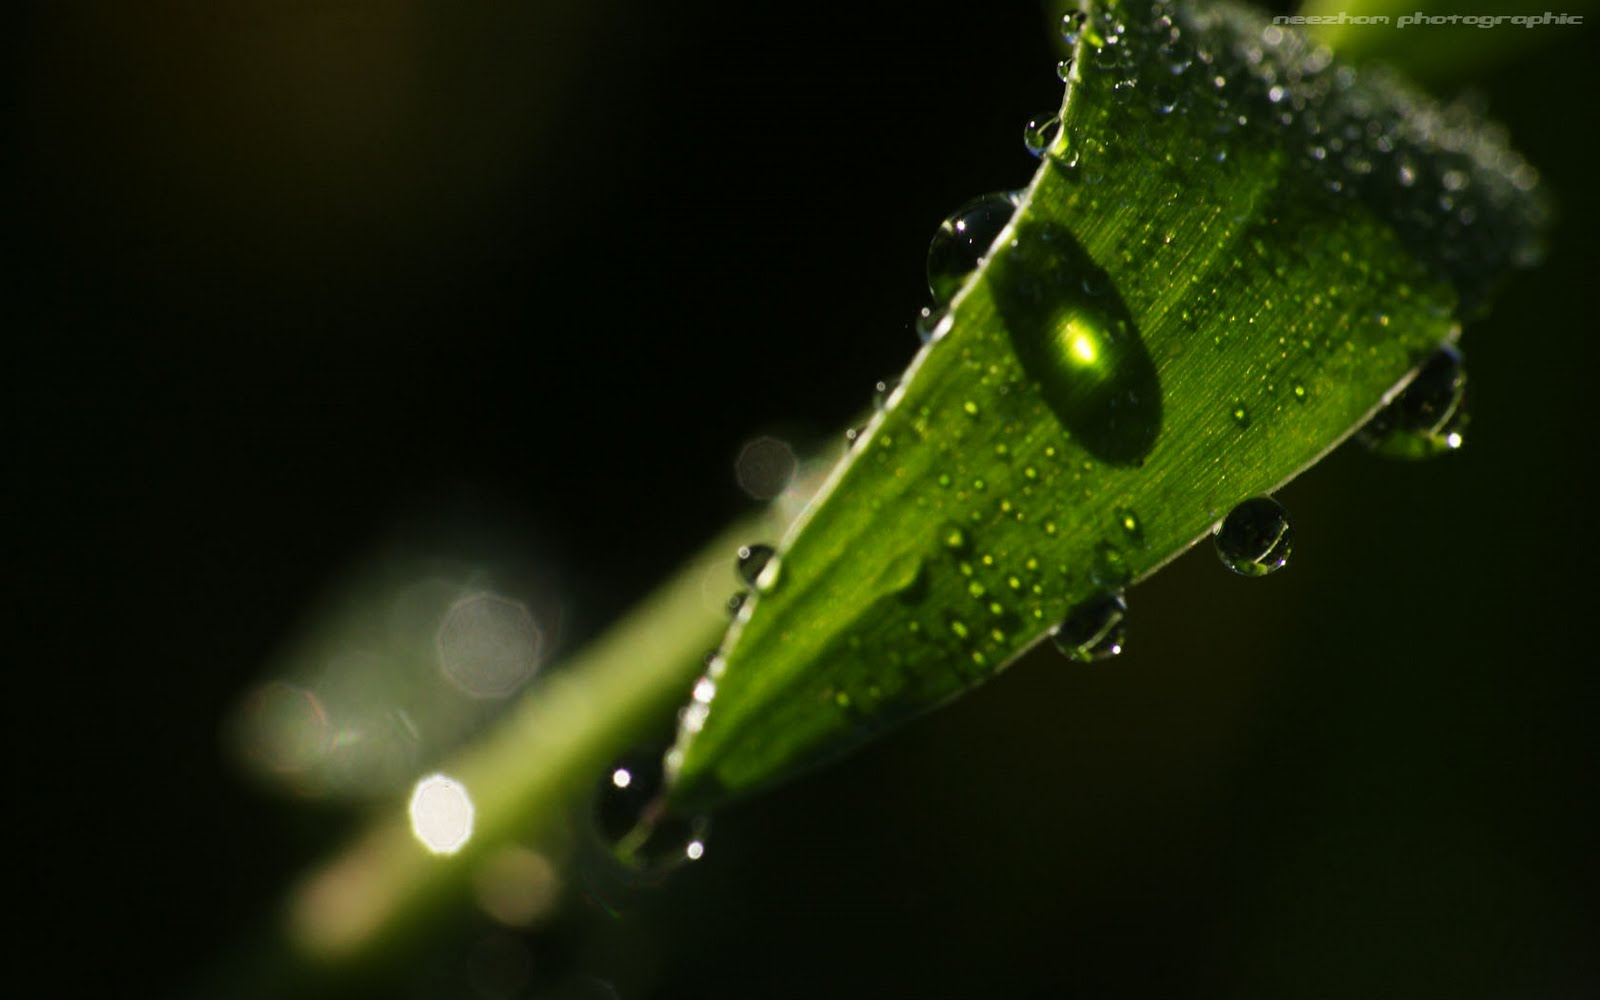 Dew drops and caustic behind the leaf